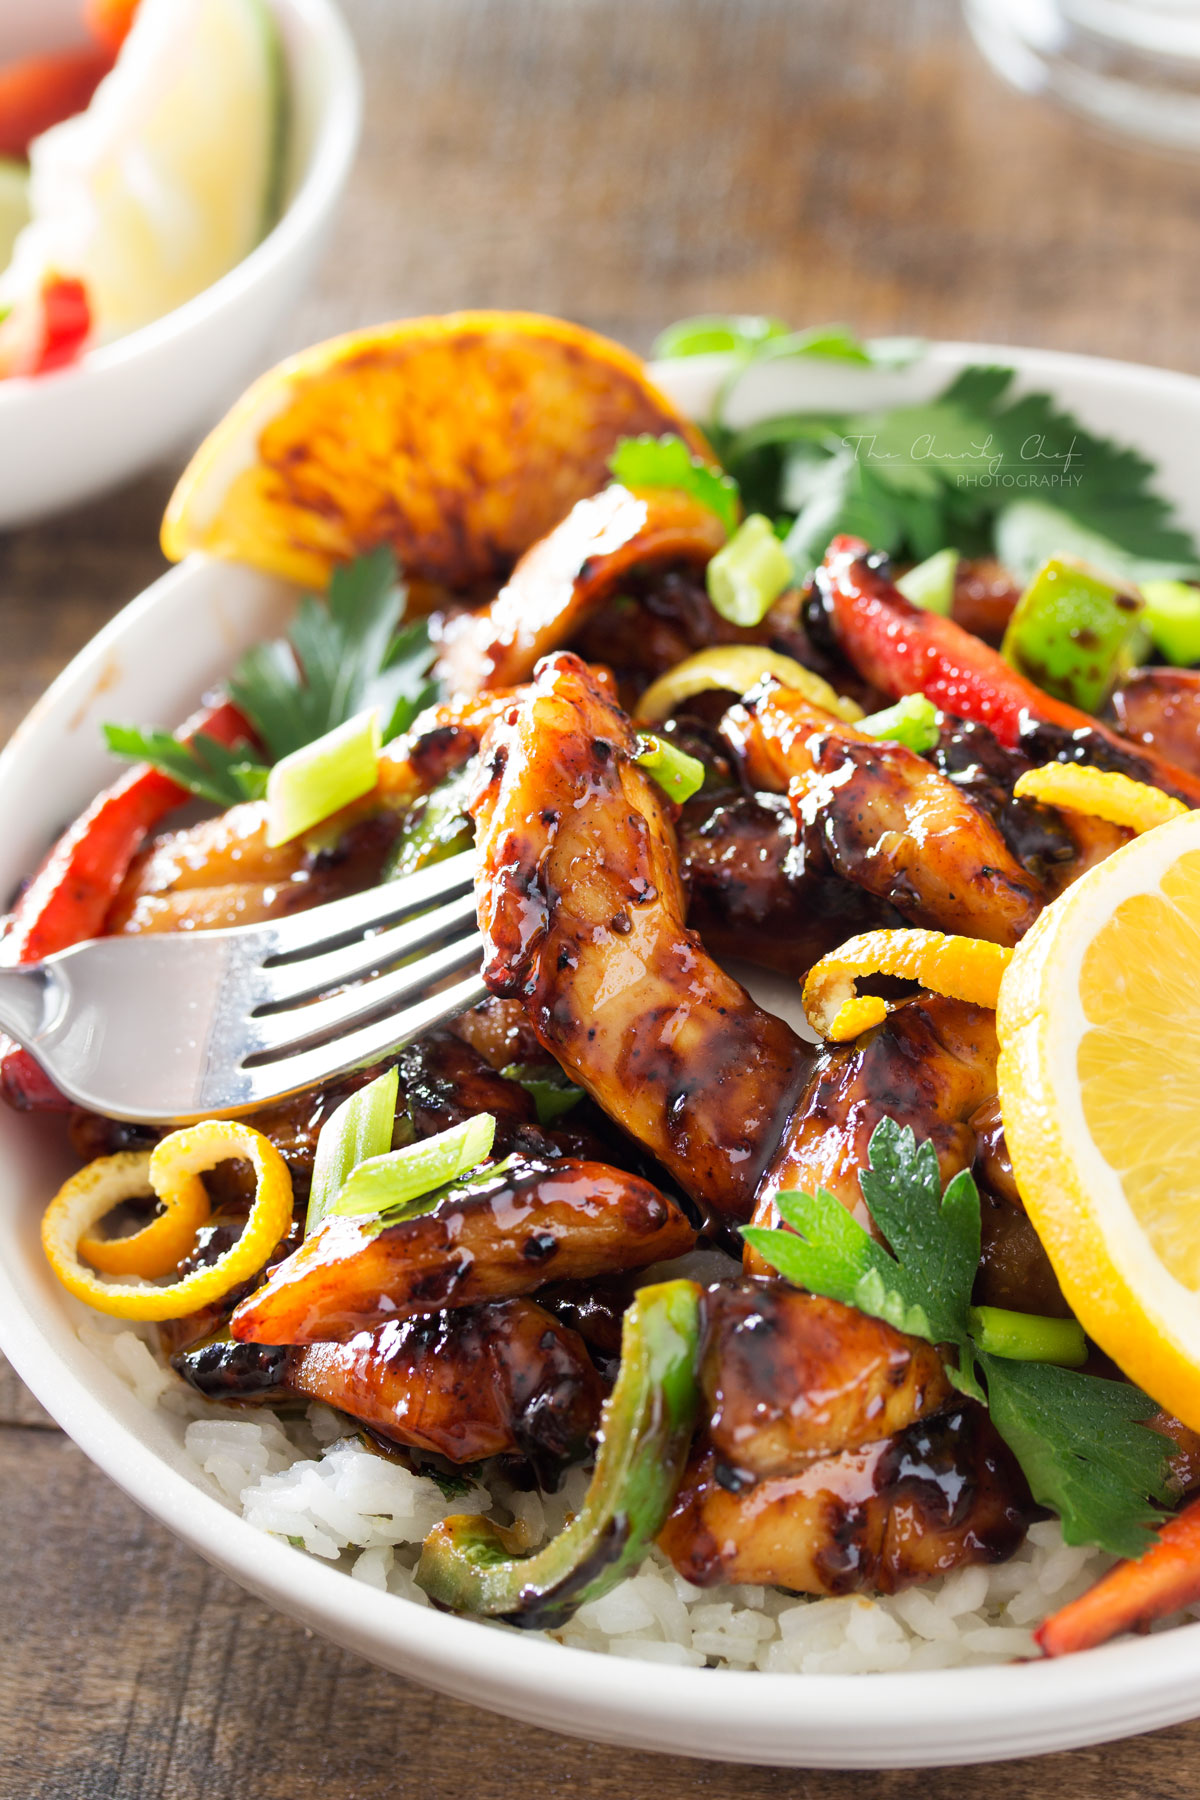 Grab a fork, and get ready to dig into this luscious Cajun Honey Chicken! It's loaded with flavor and ready in only a half hour. Just right for busy nights!